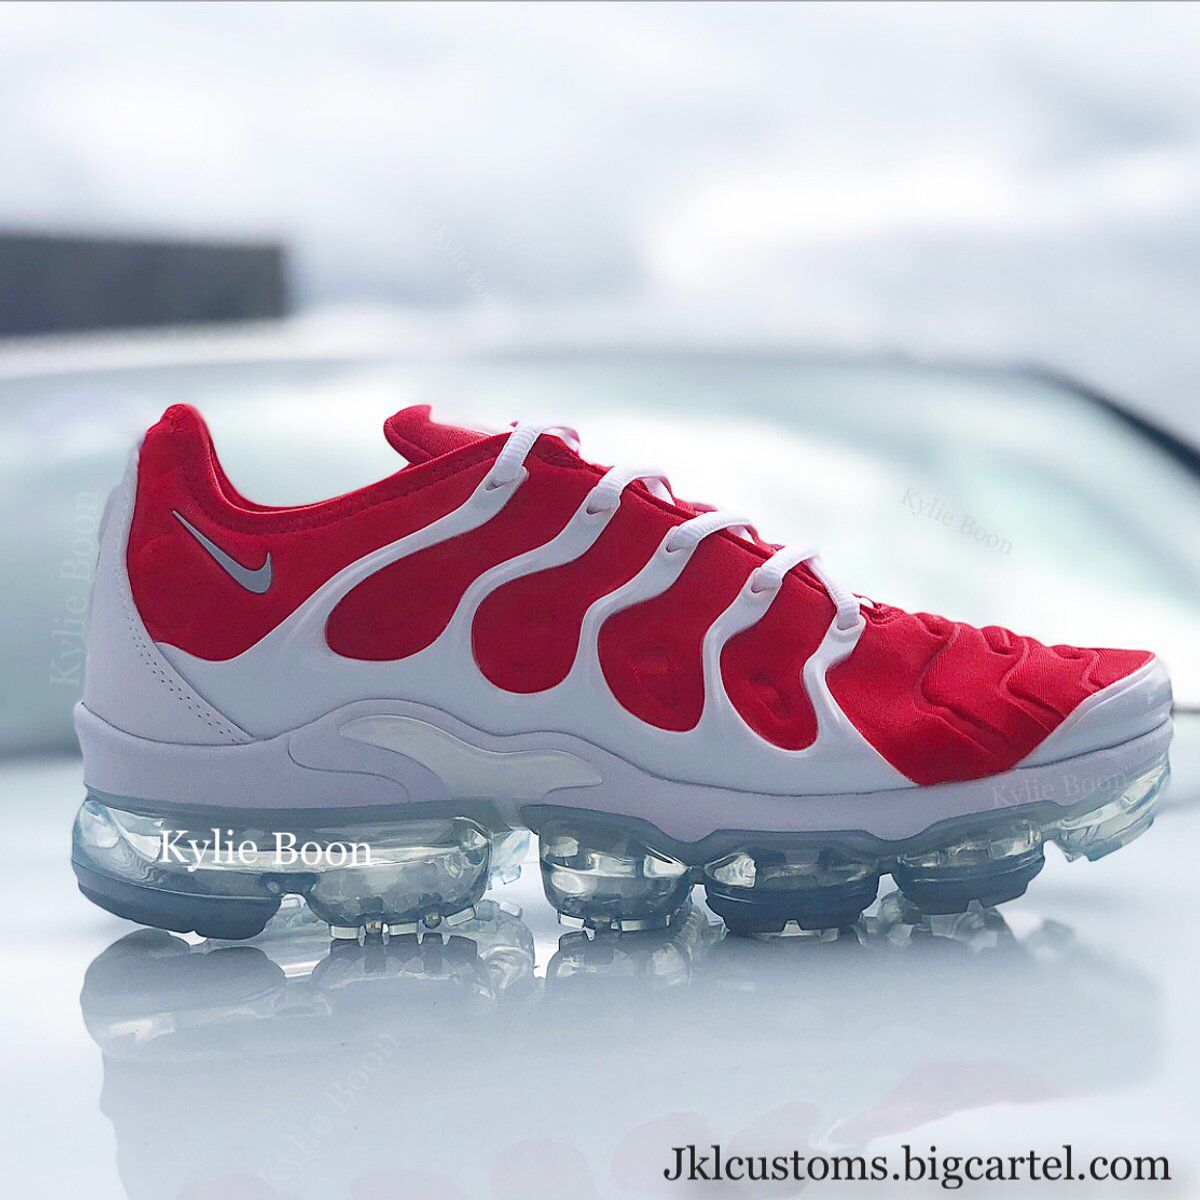 ac5096e778b1c CHILLI red Nike Vapormax Plus custom by Kylie boon kylieboon.bigcartel.com